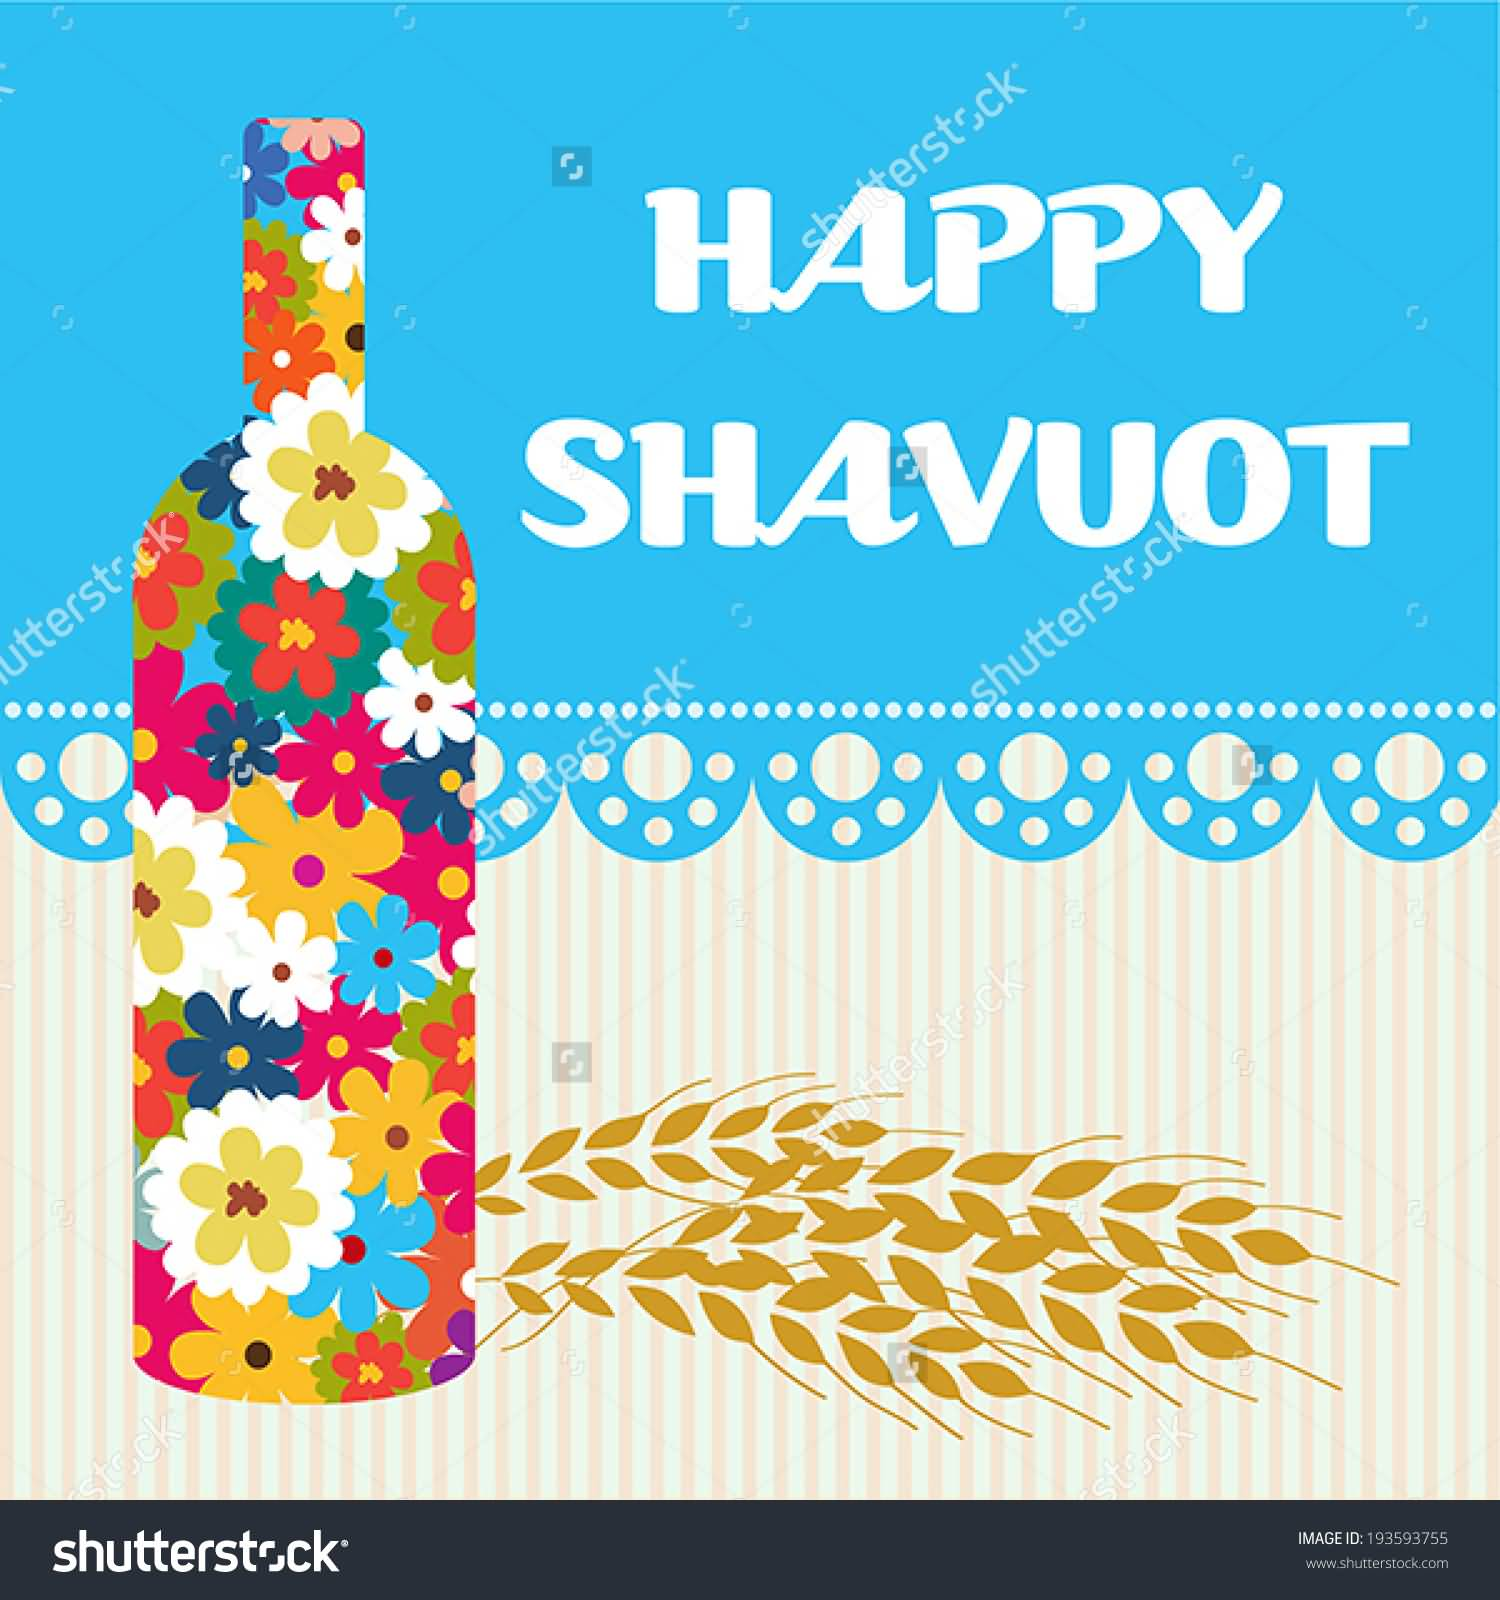 Happy Shavuot Colorful Flowers Bottle And Wheat Crop Illustration